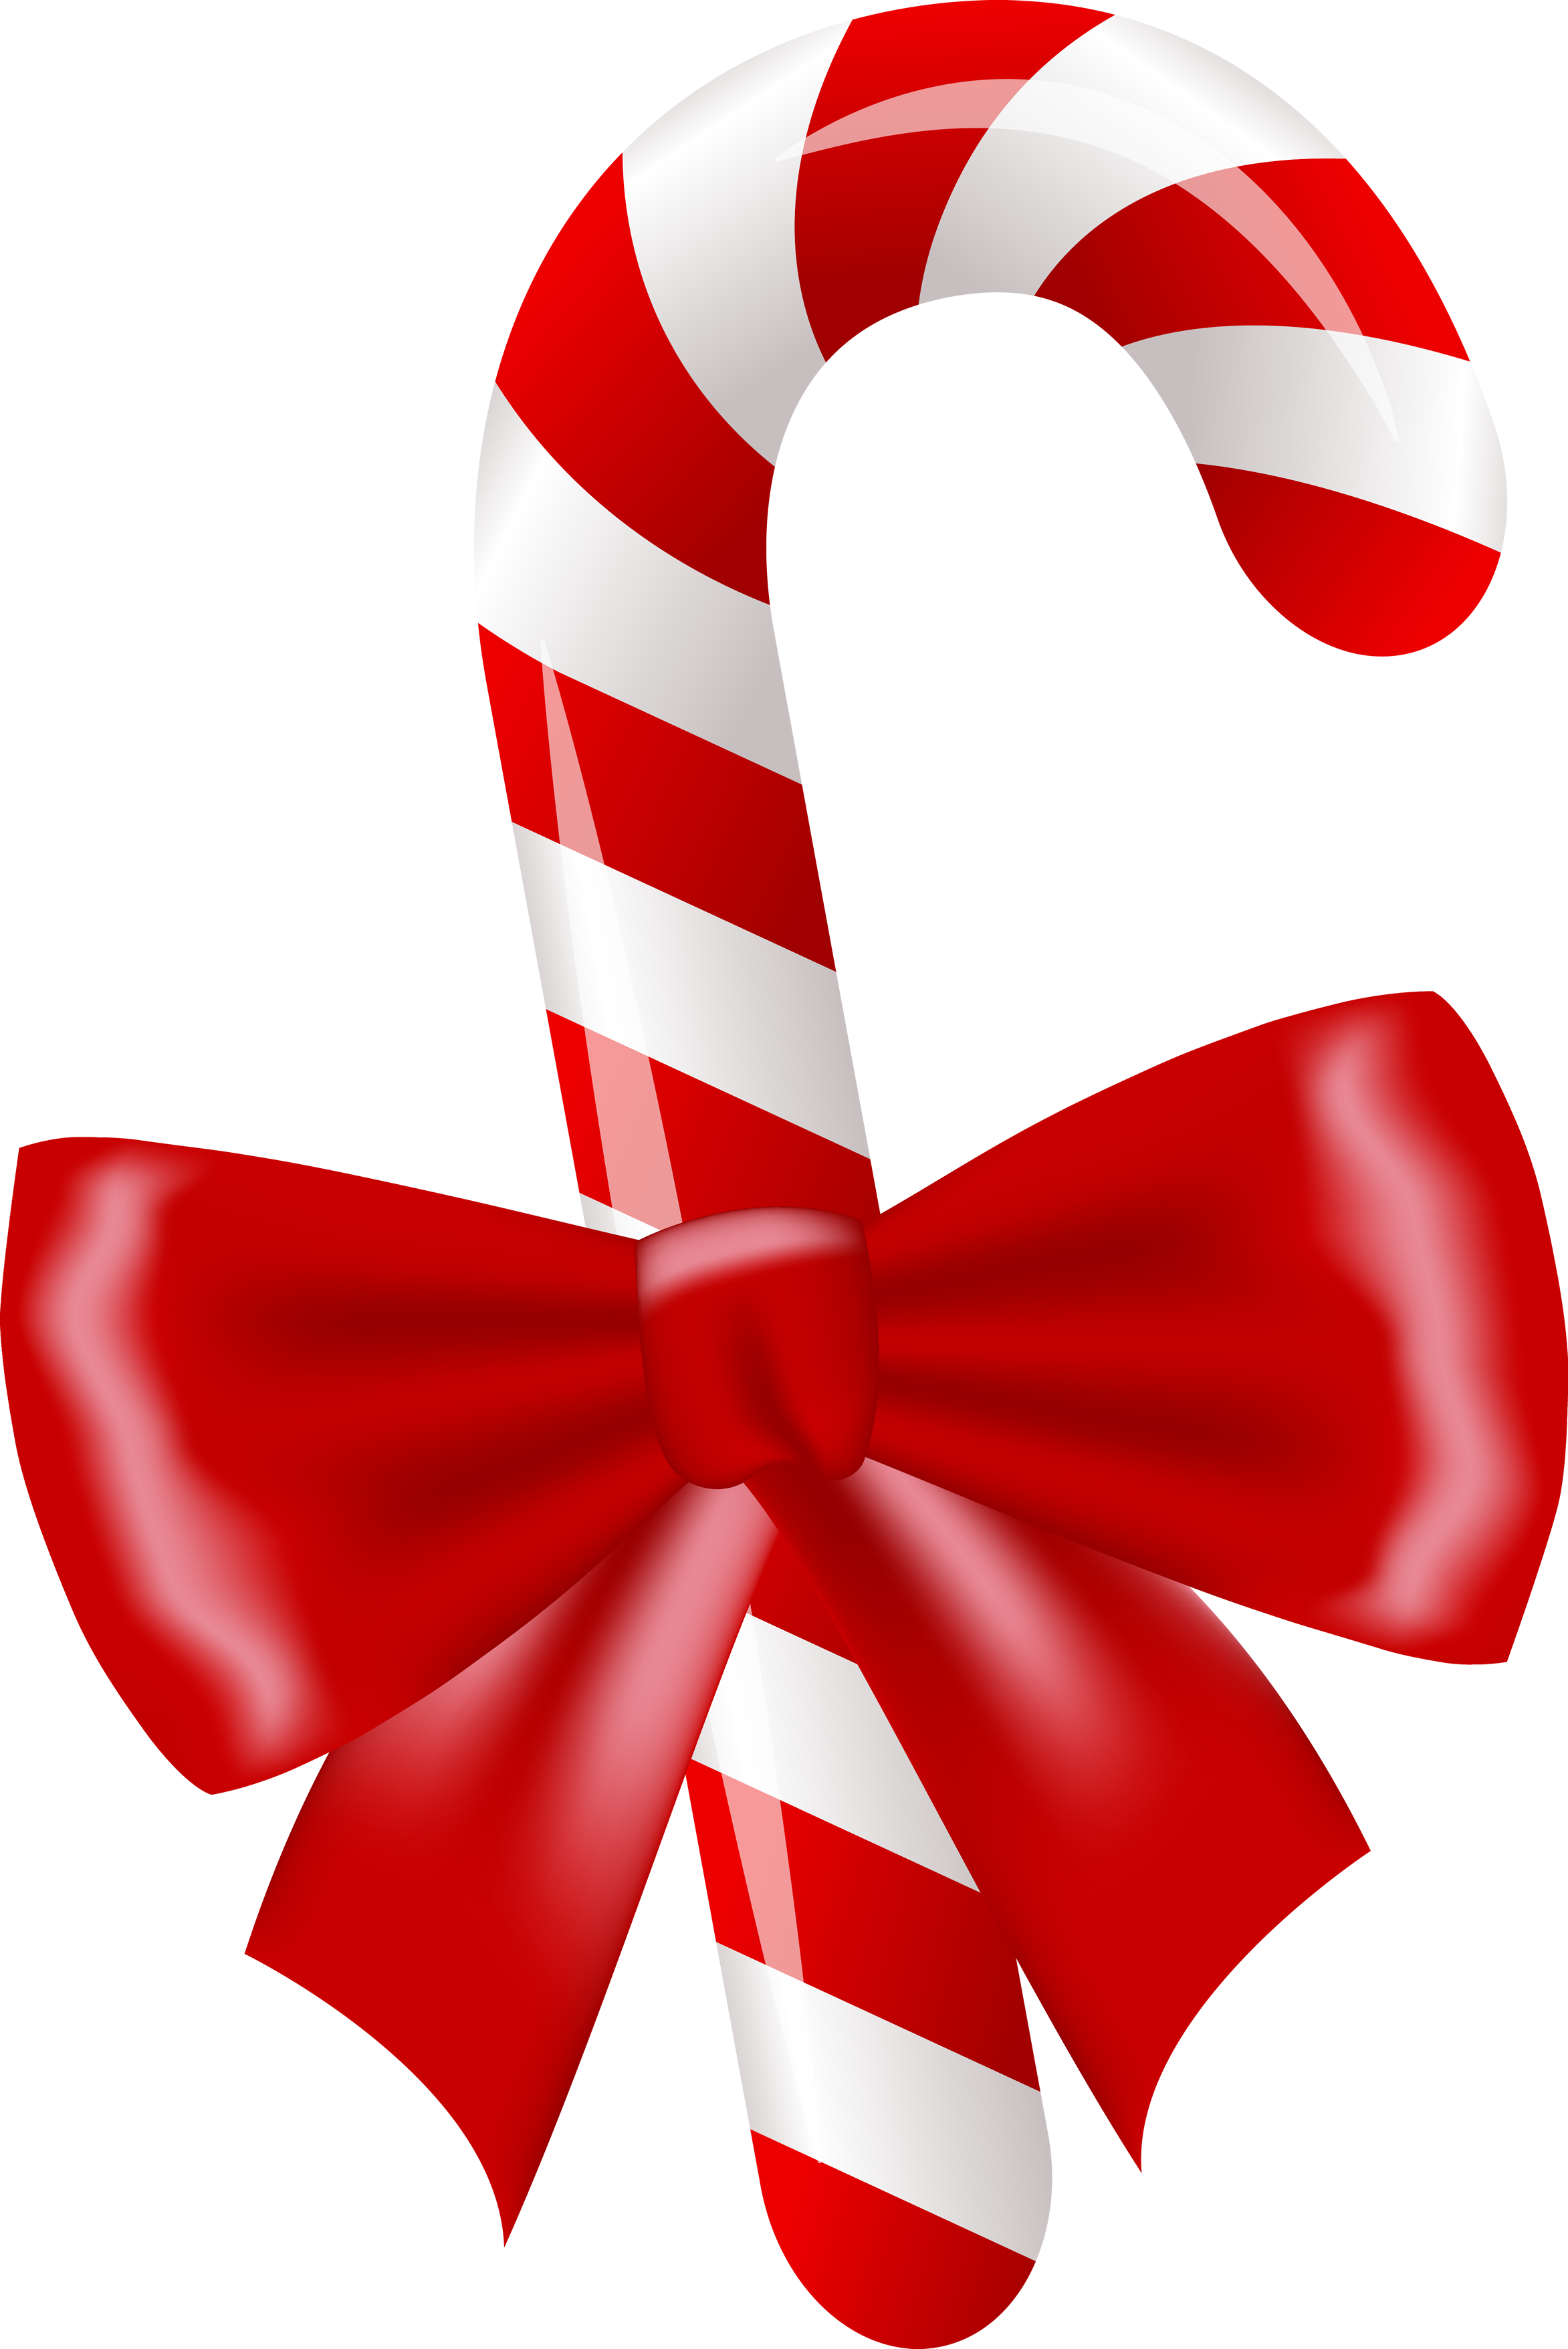 Candy cane free on. Clipart present clipart clear background